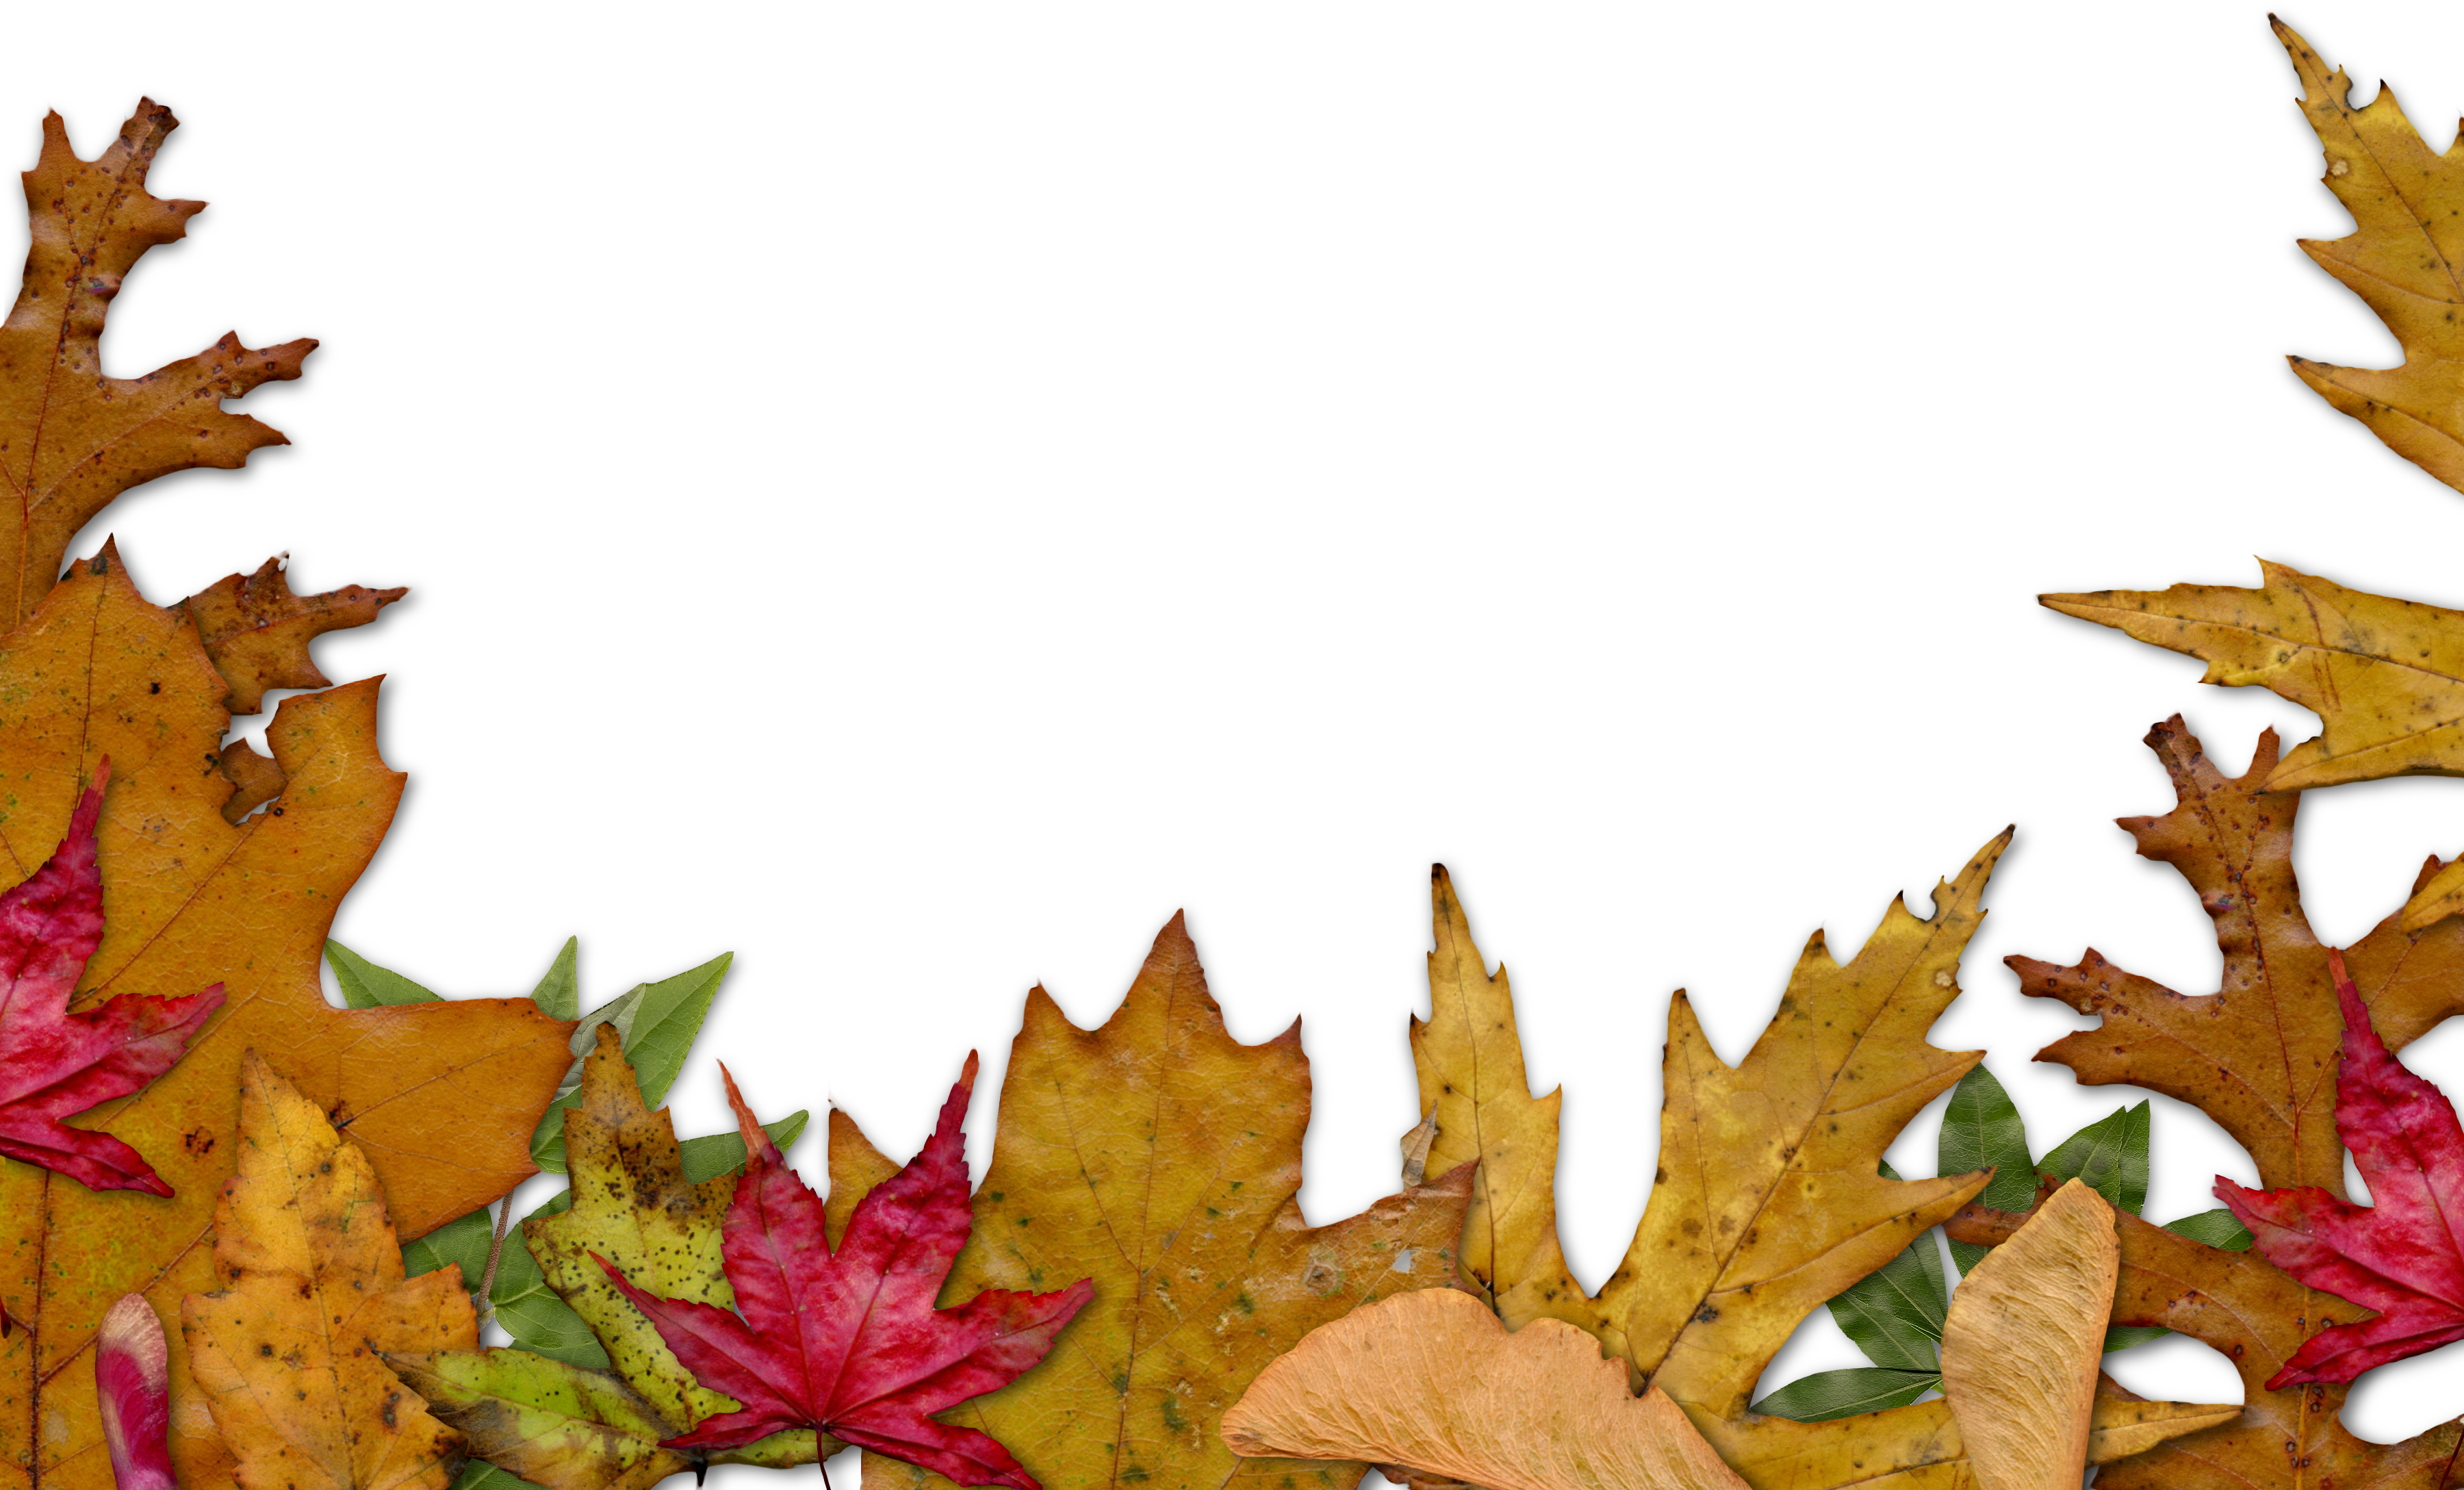 freebie: fall leaves edger